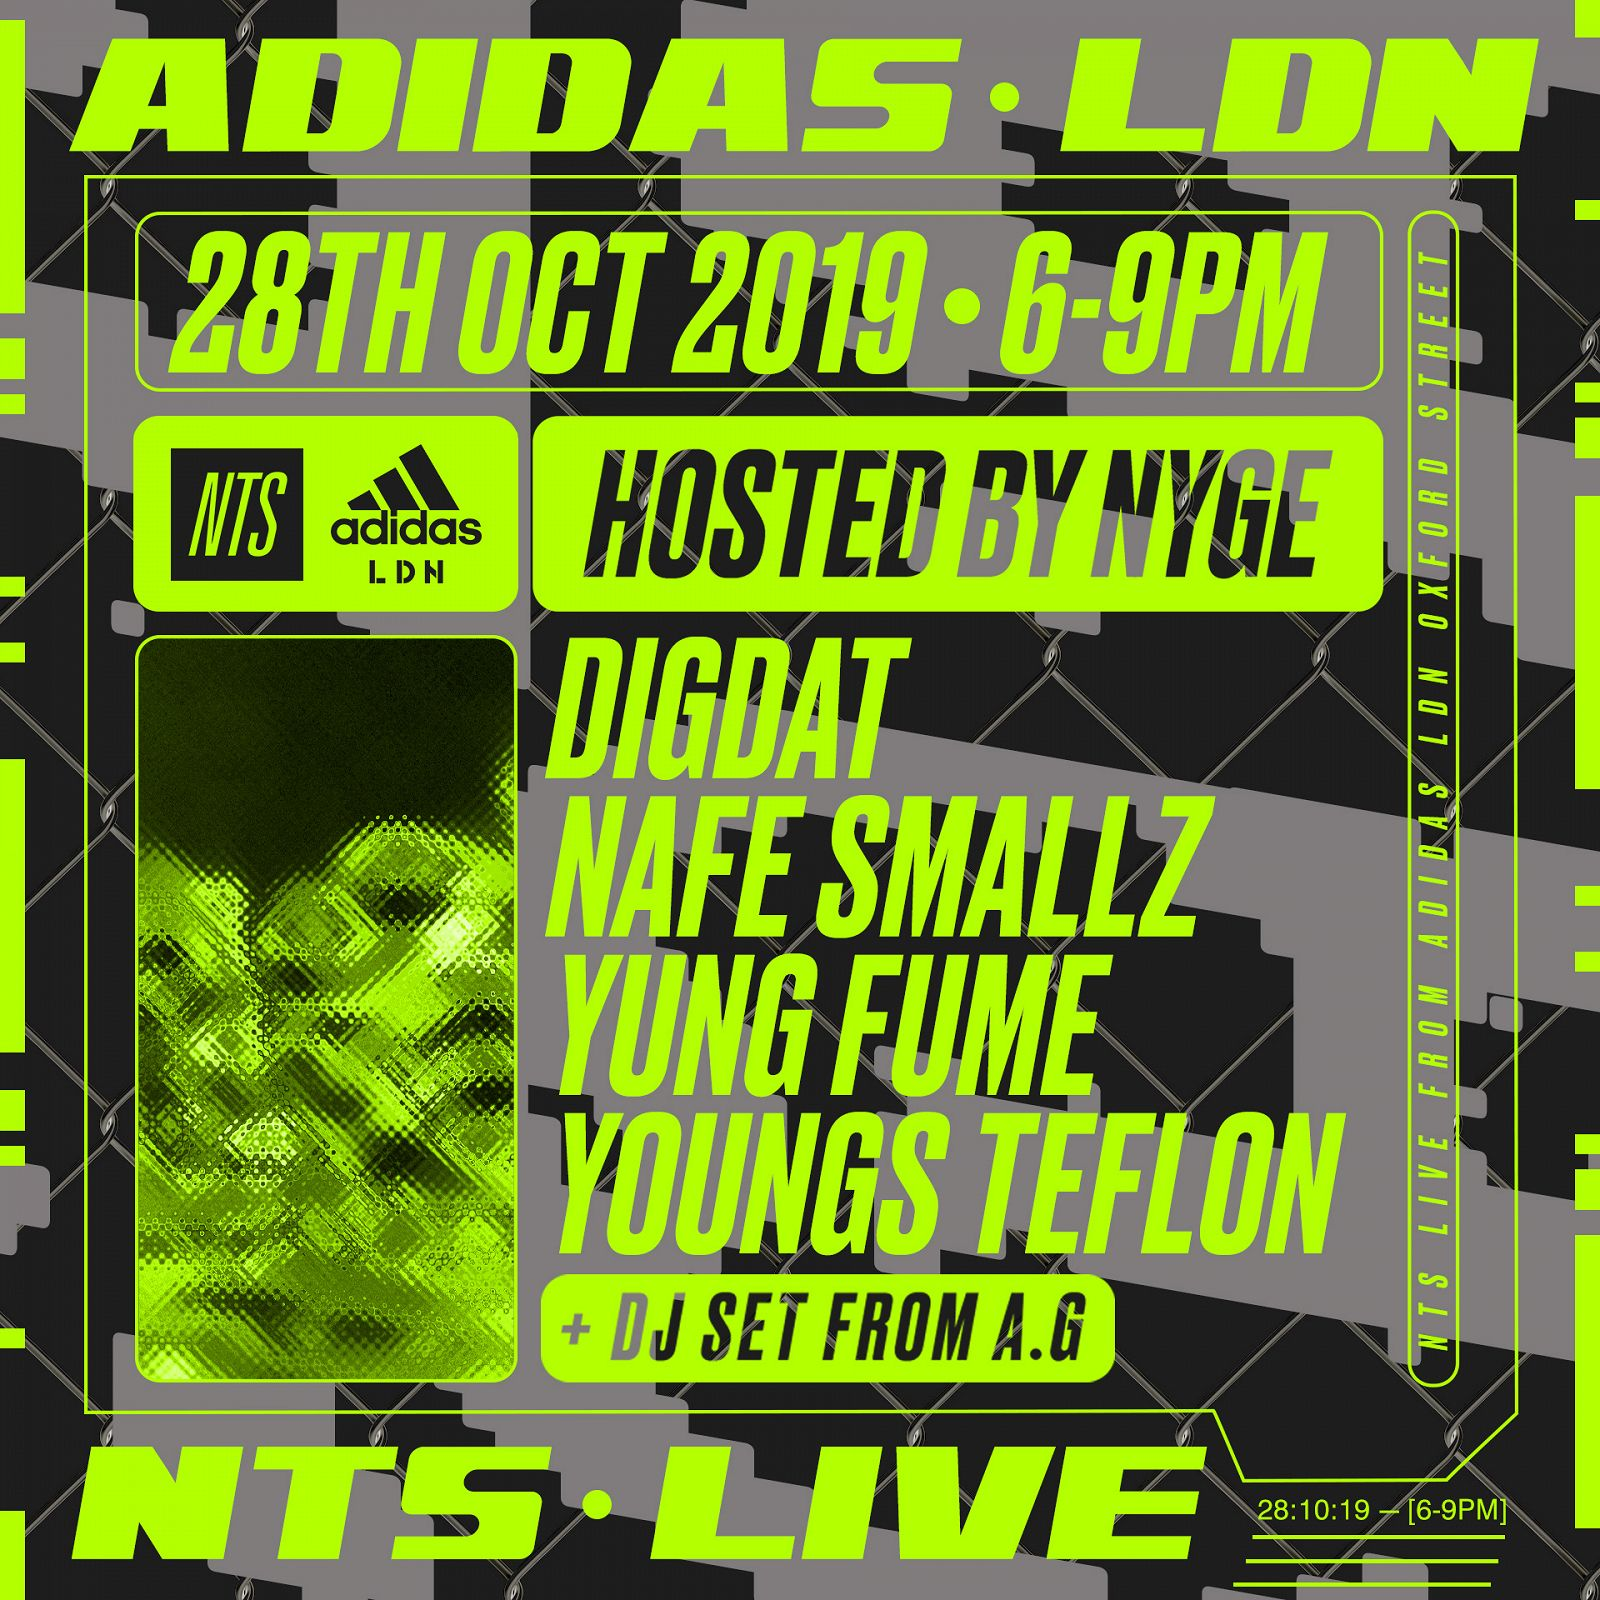 NTS Adidas Broadcast Final Still.jpg